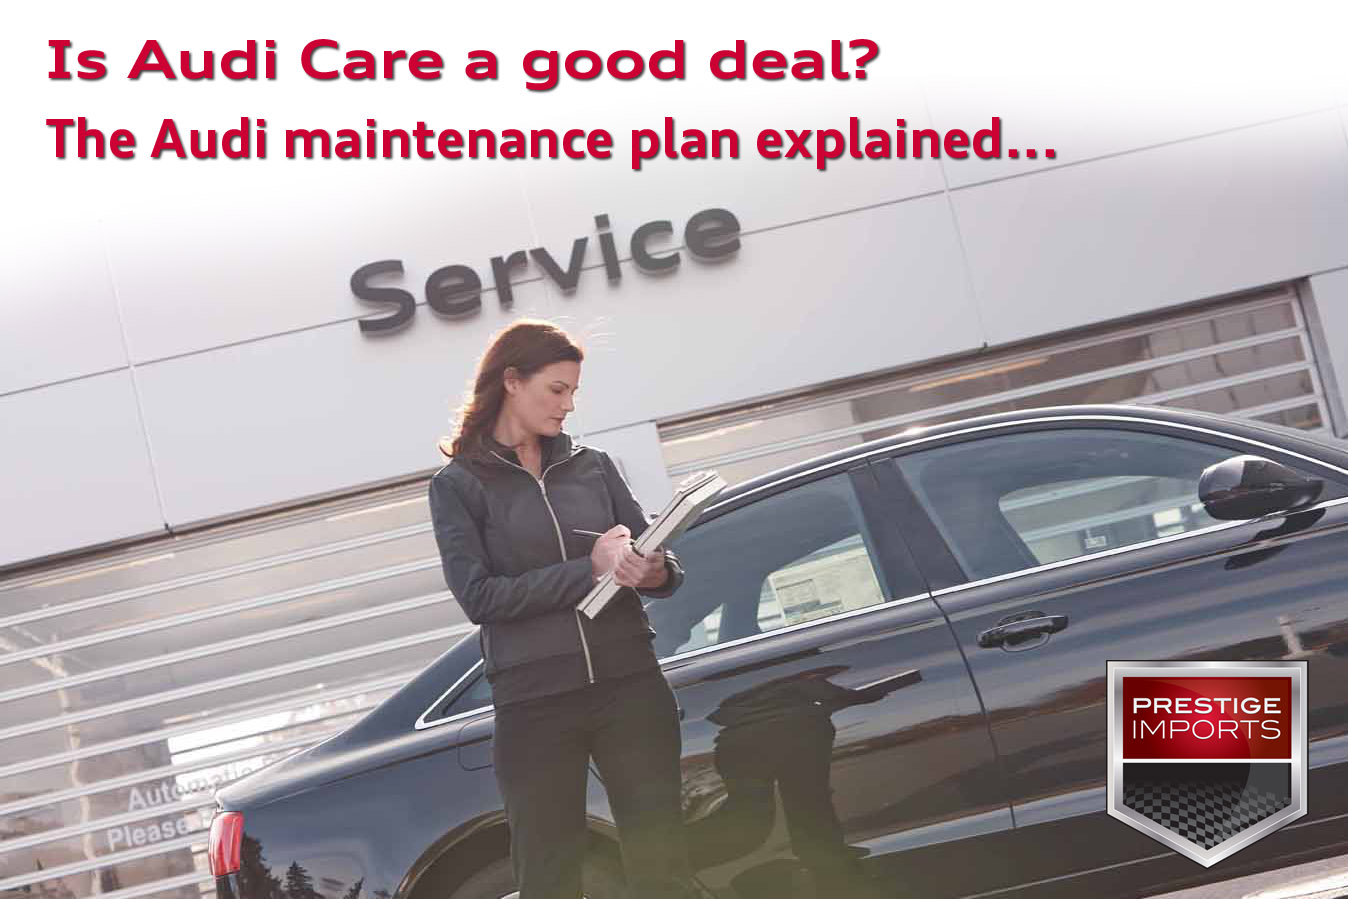 Is Audi Care a good deal? The Audi maintenance plan explained